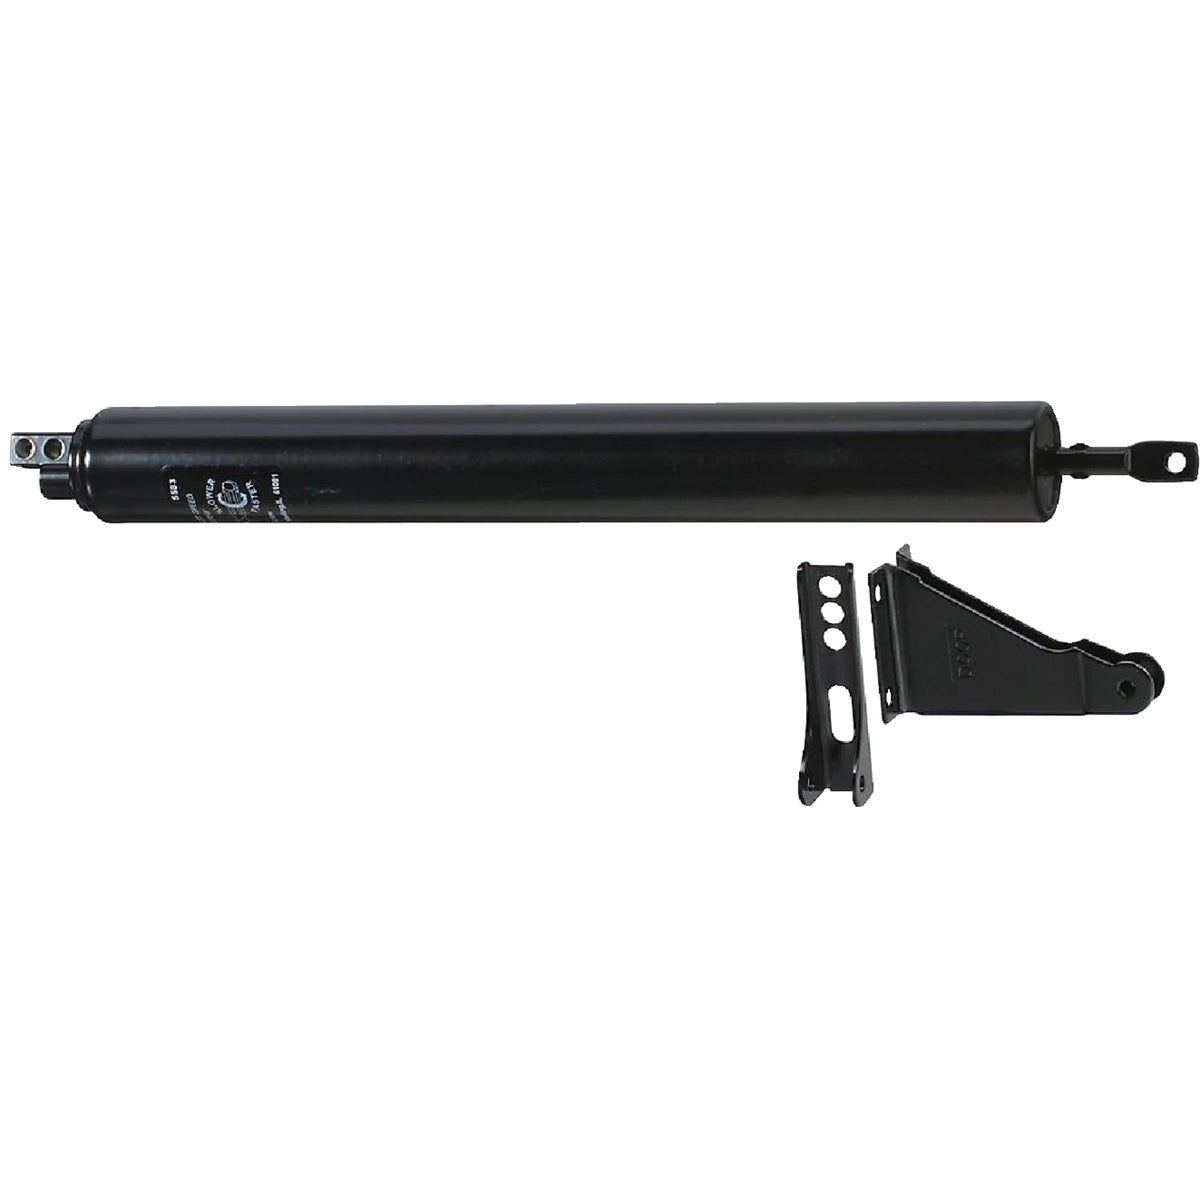 BLACK DOOR CLOSER - N181610 by National Mfg Co